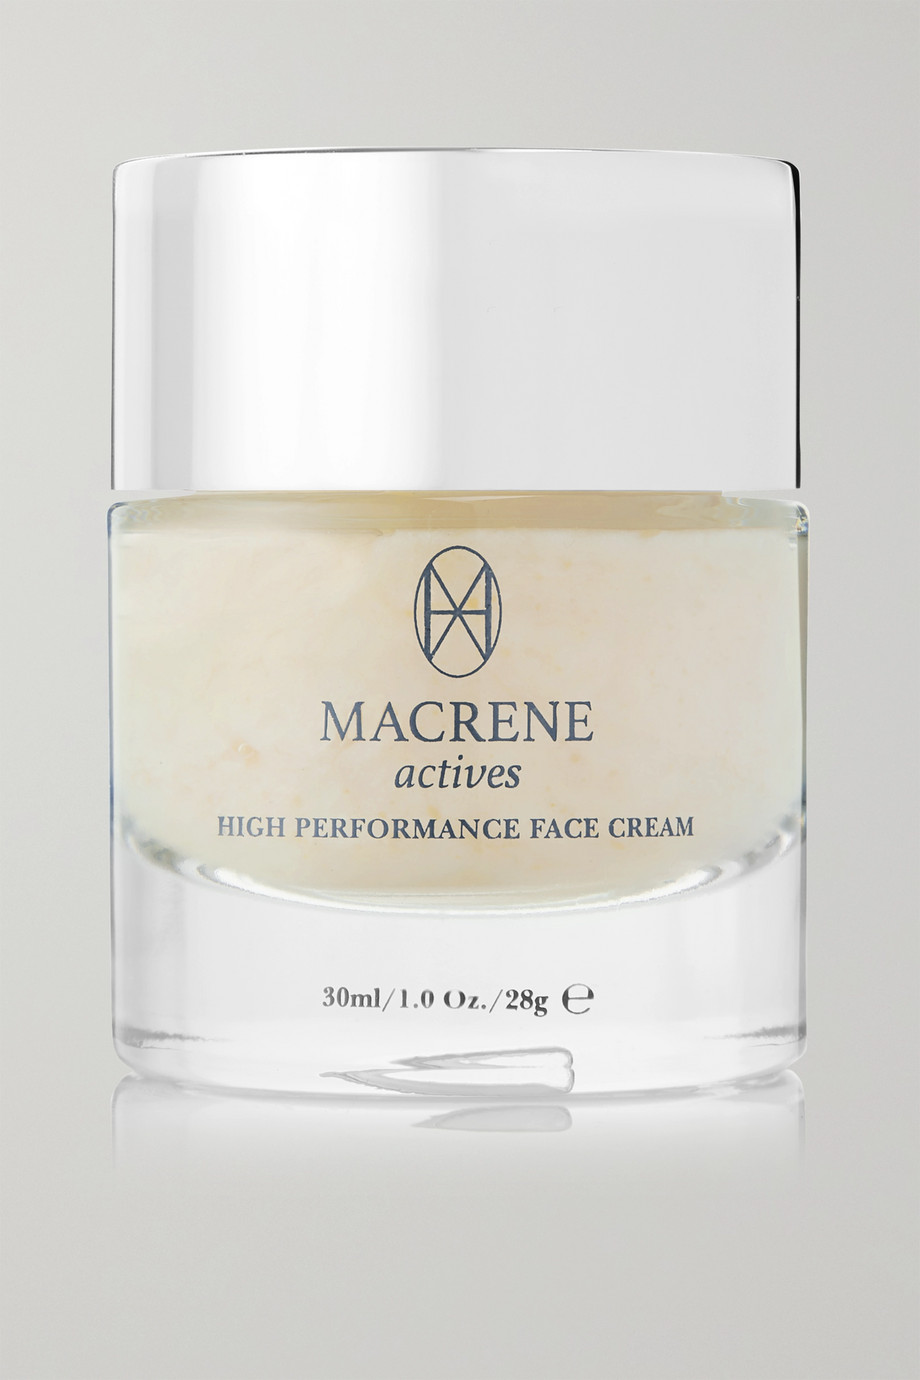 MACRENE ACTIVES High Performance Face Cream, 30ml